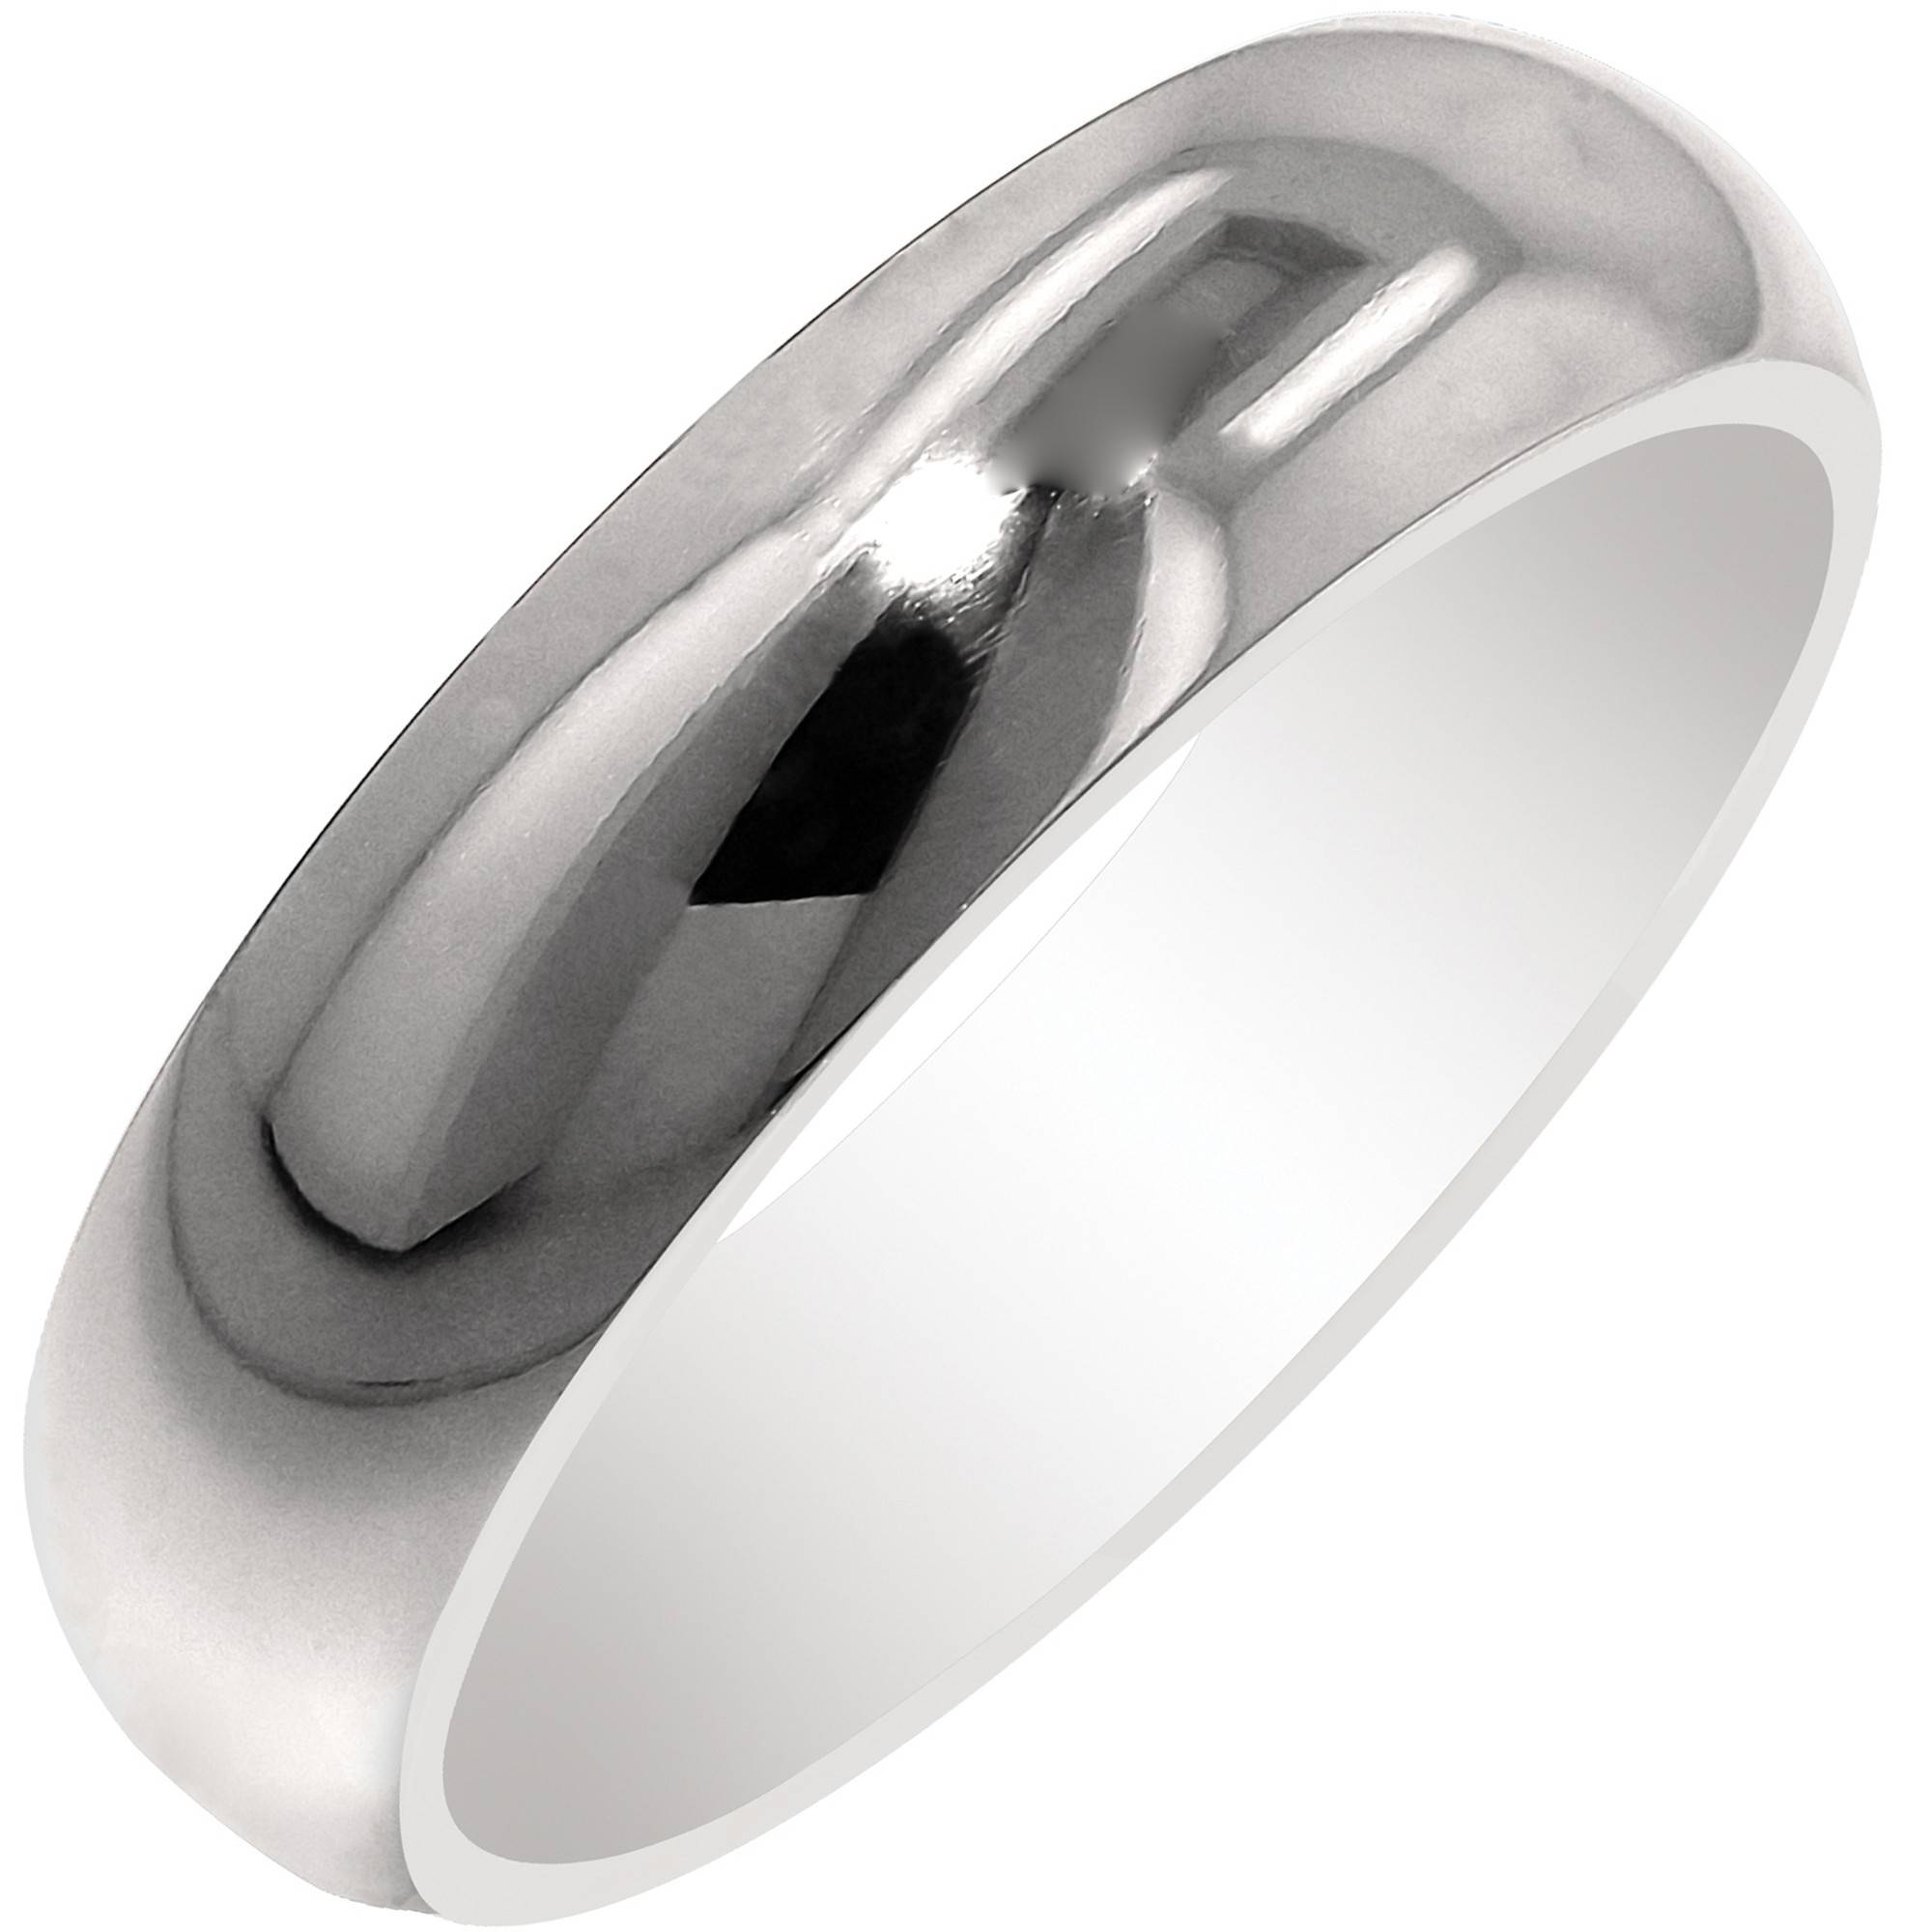 Artcarved Honor Mens Plain Wedding Band In Titanium (6Mm) Intended For Artcarved Men Wedding Bands (Gallery 9 of 15)